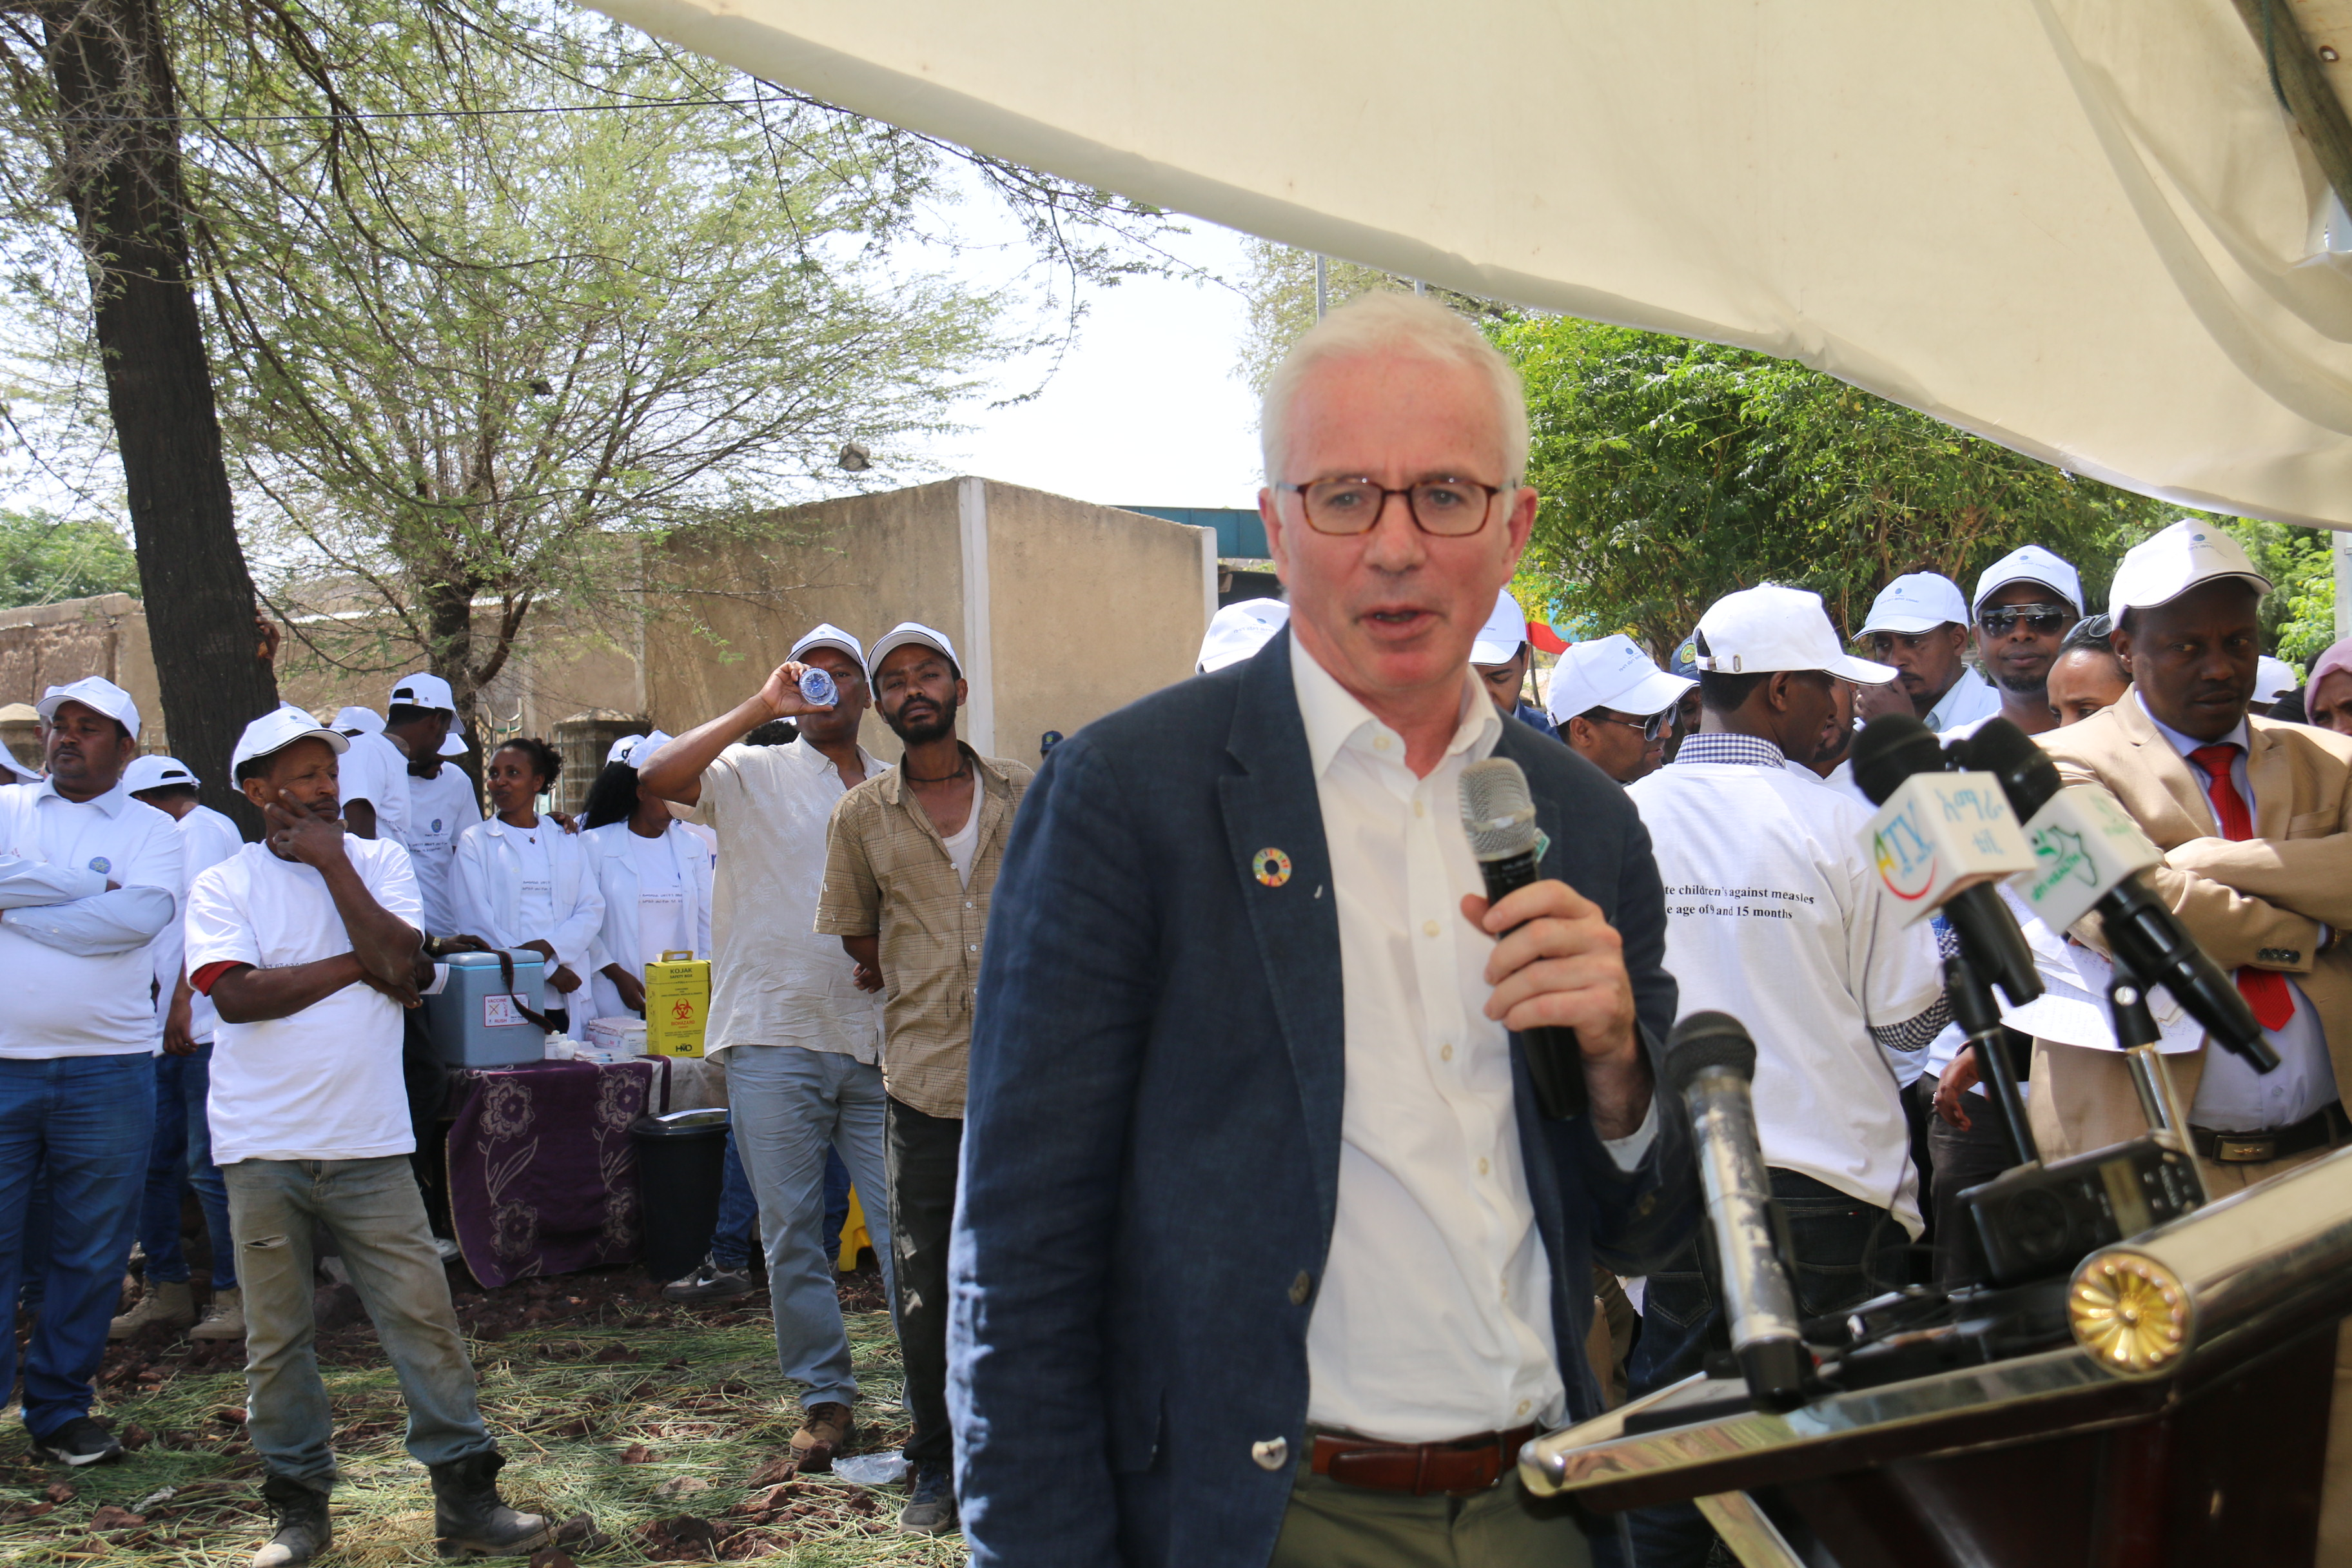 Global Fund Executive Director, Peter Sands delivering remark during the MCV2 vaccination launching in Ethiopia